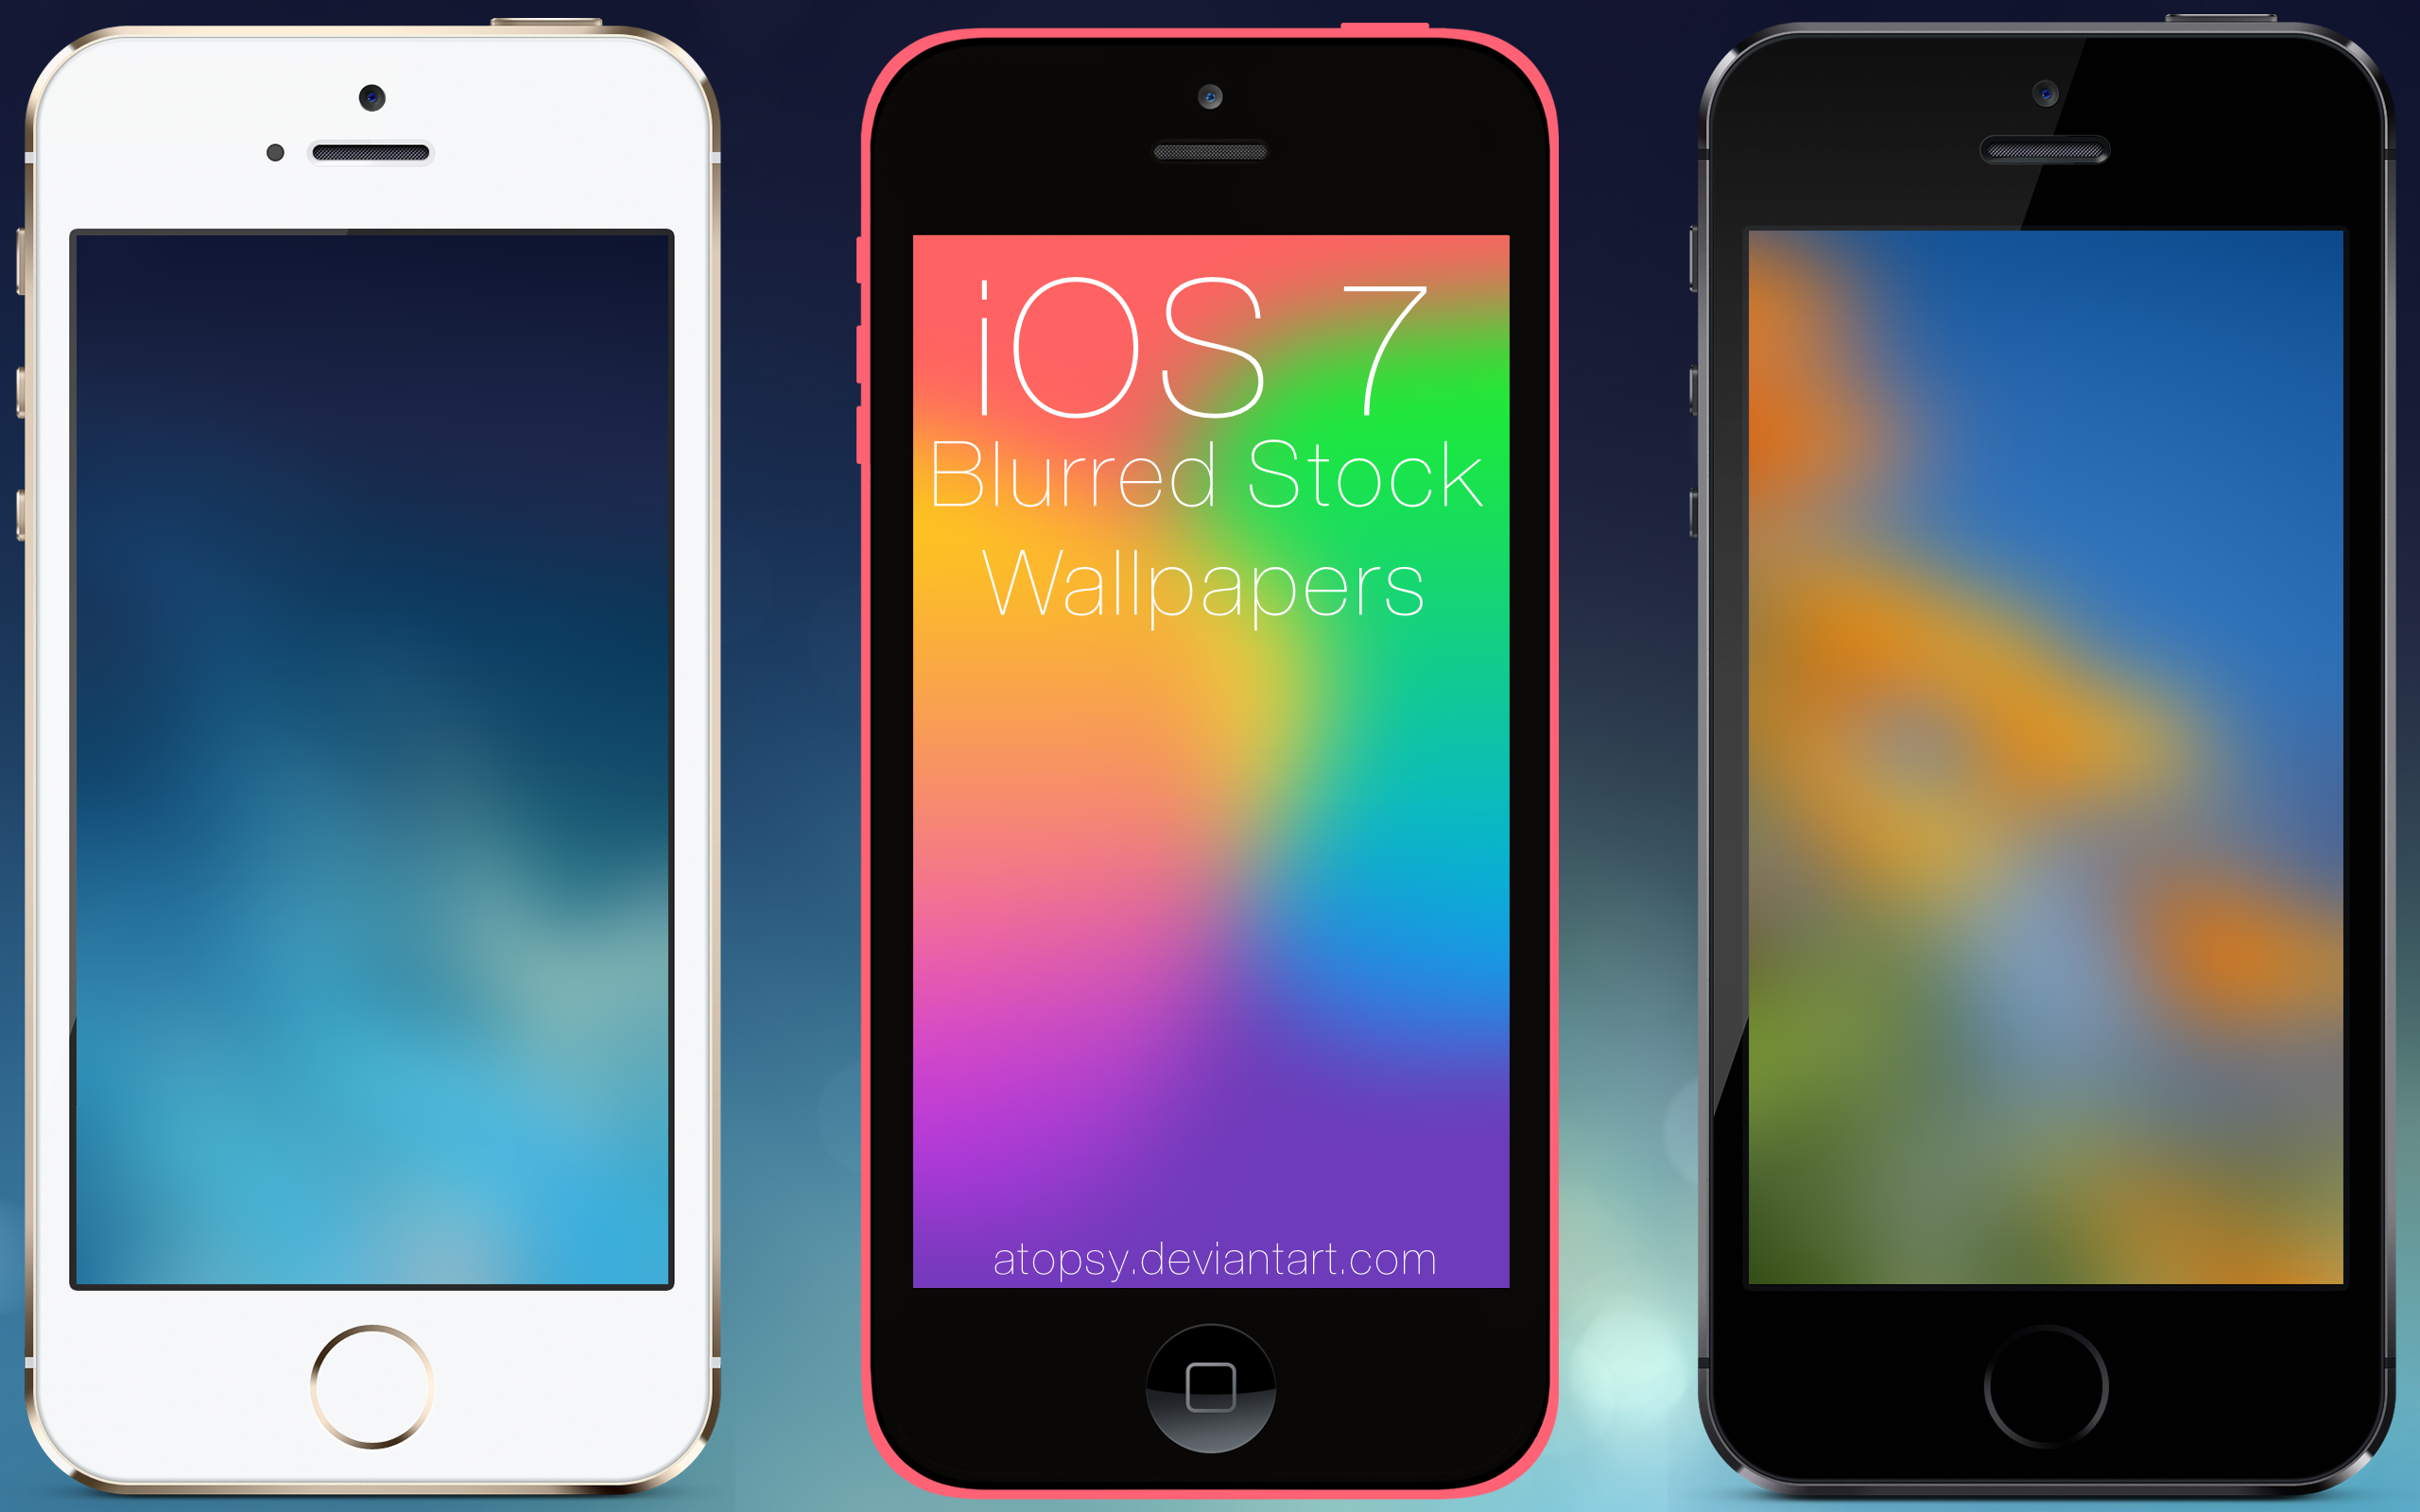 Good Wallpapers For Iphone 5c: Blurred Wallpapers (iPhone/iPod Touch 5/5s/5c) By Atopsy